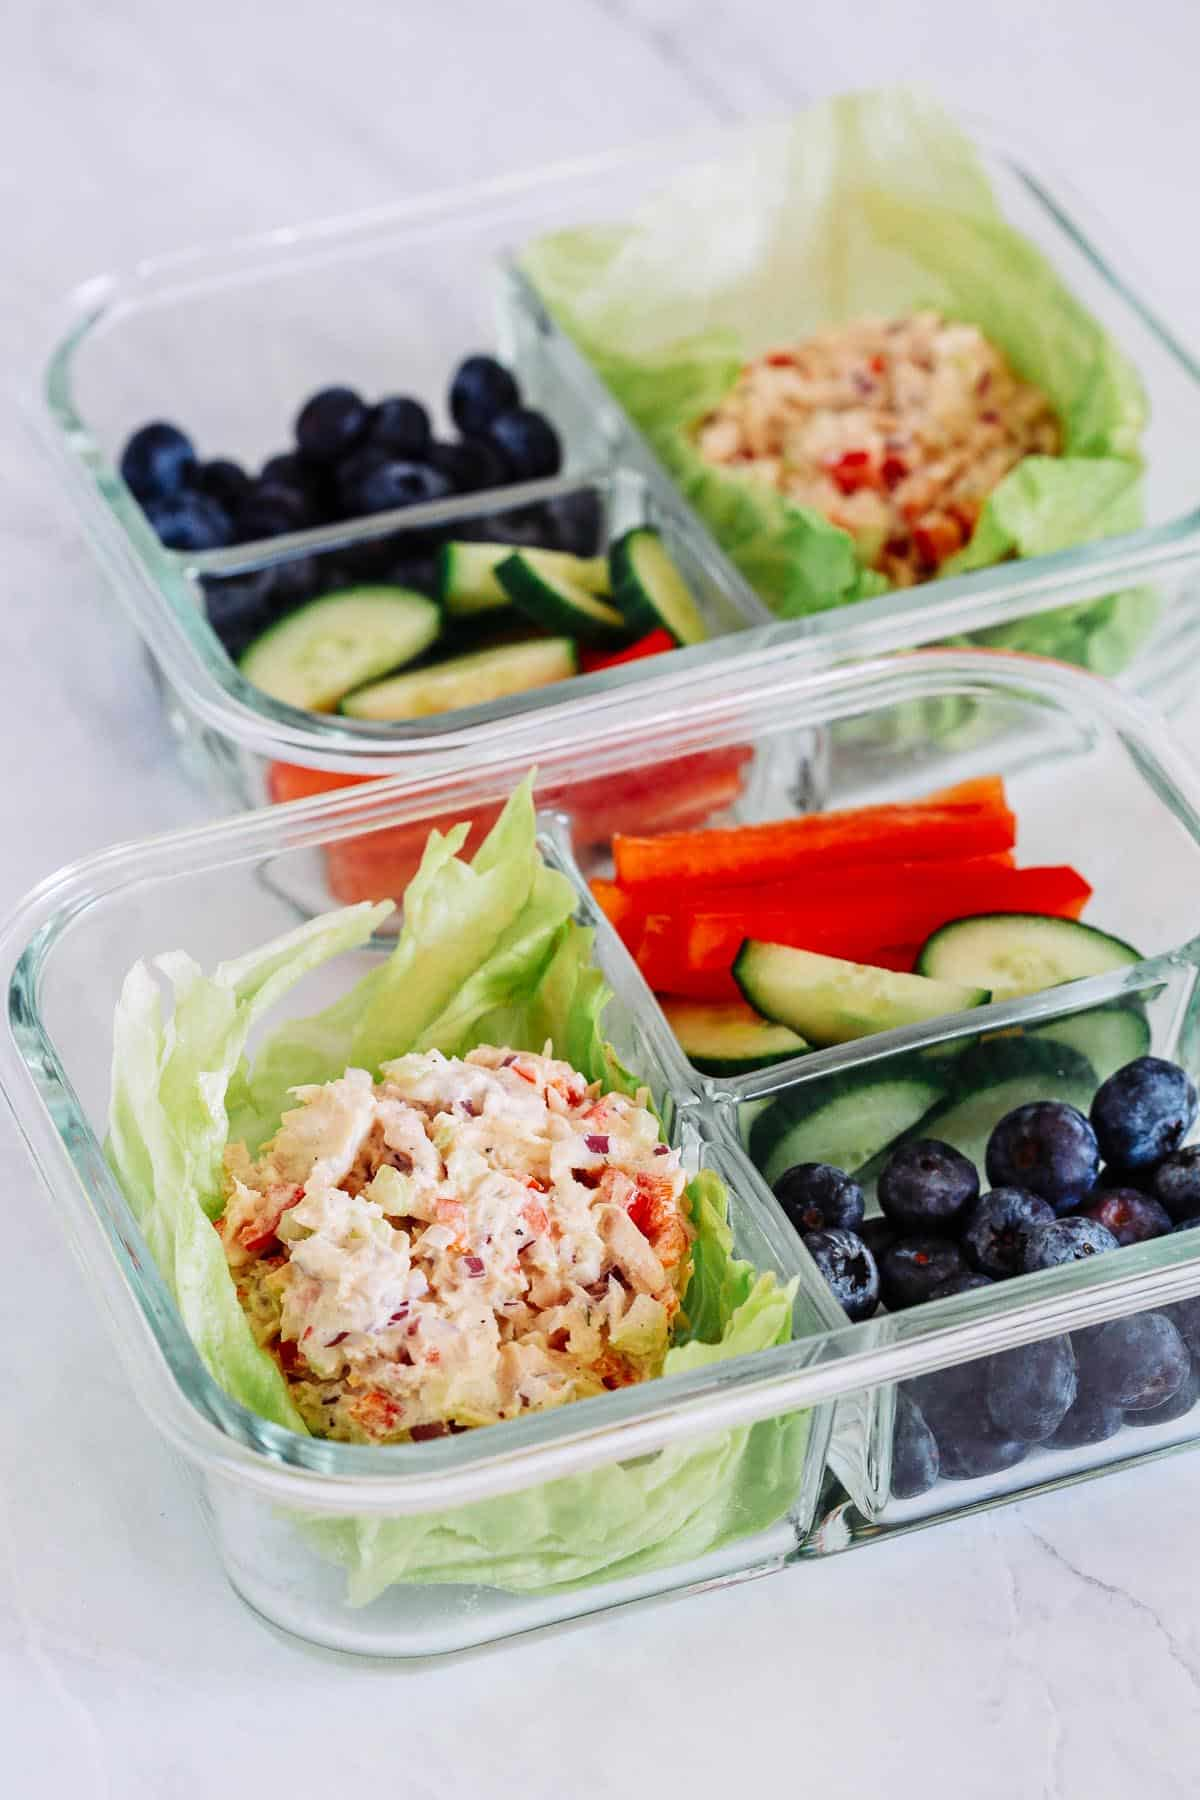 Tuna Salad in a glass containers with veggies